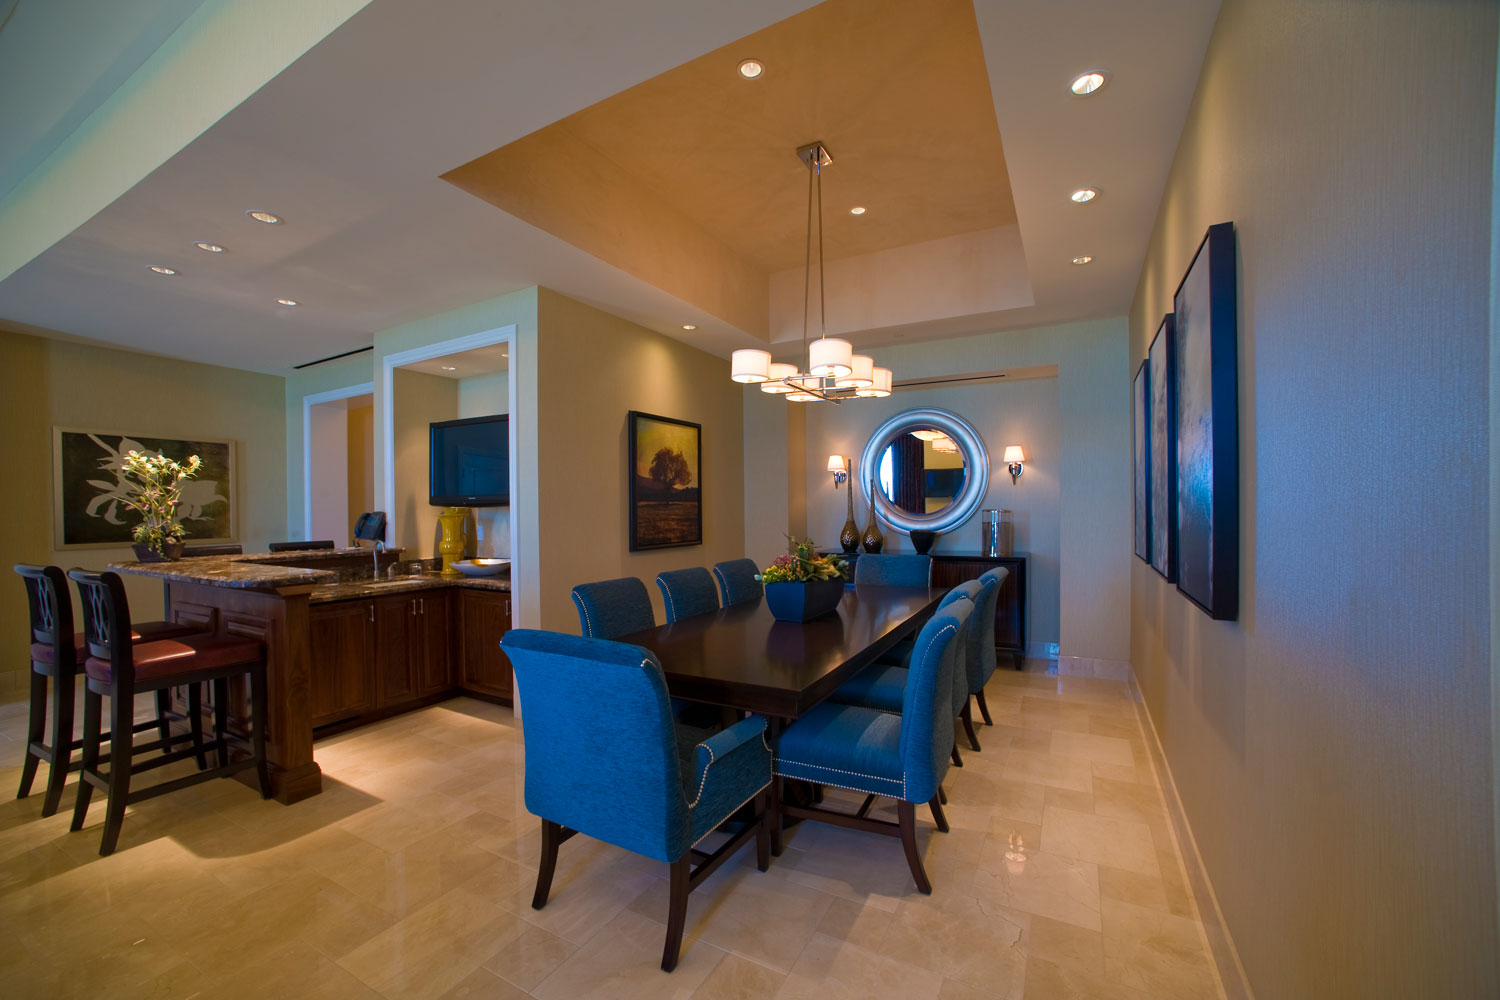 Each Suite has its own unique touches, such as dining tables, pool tables, personal workout equipment and more.